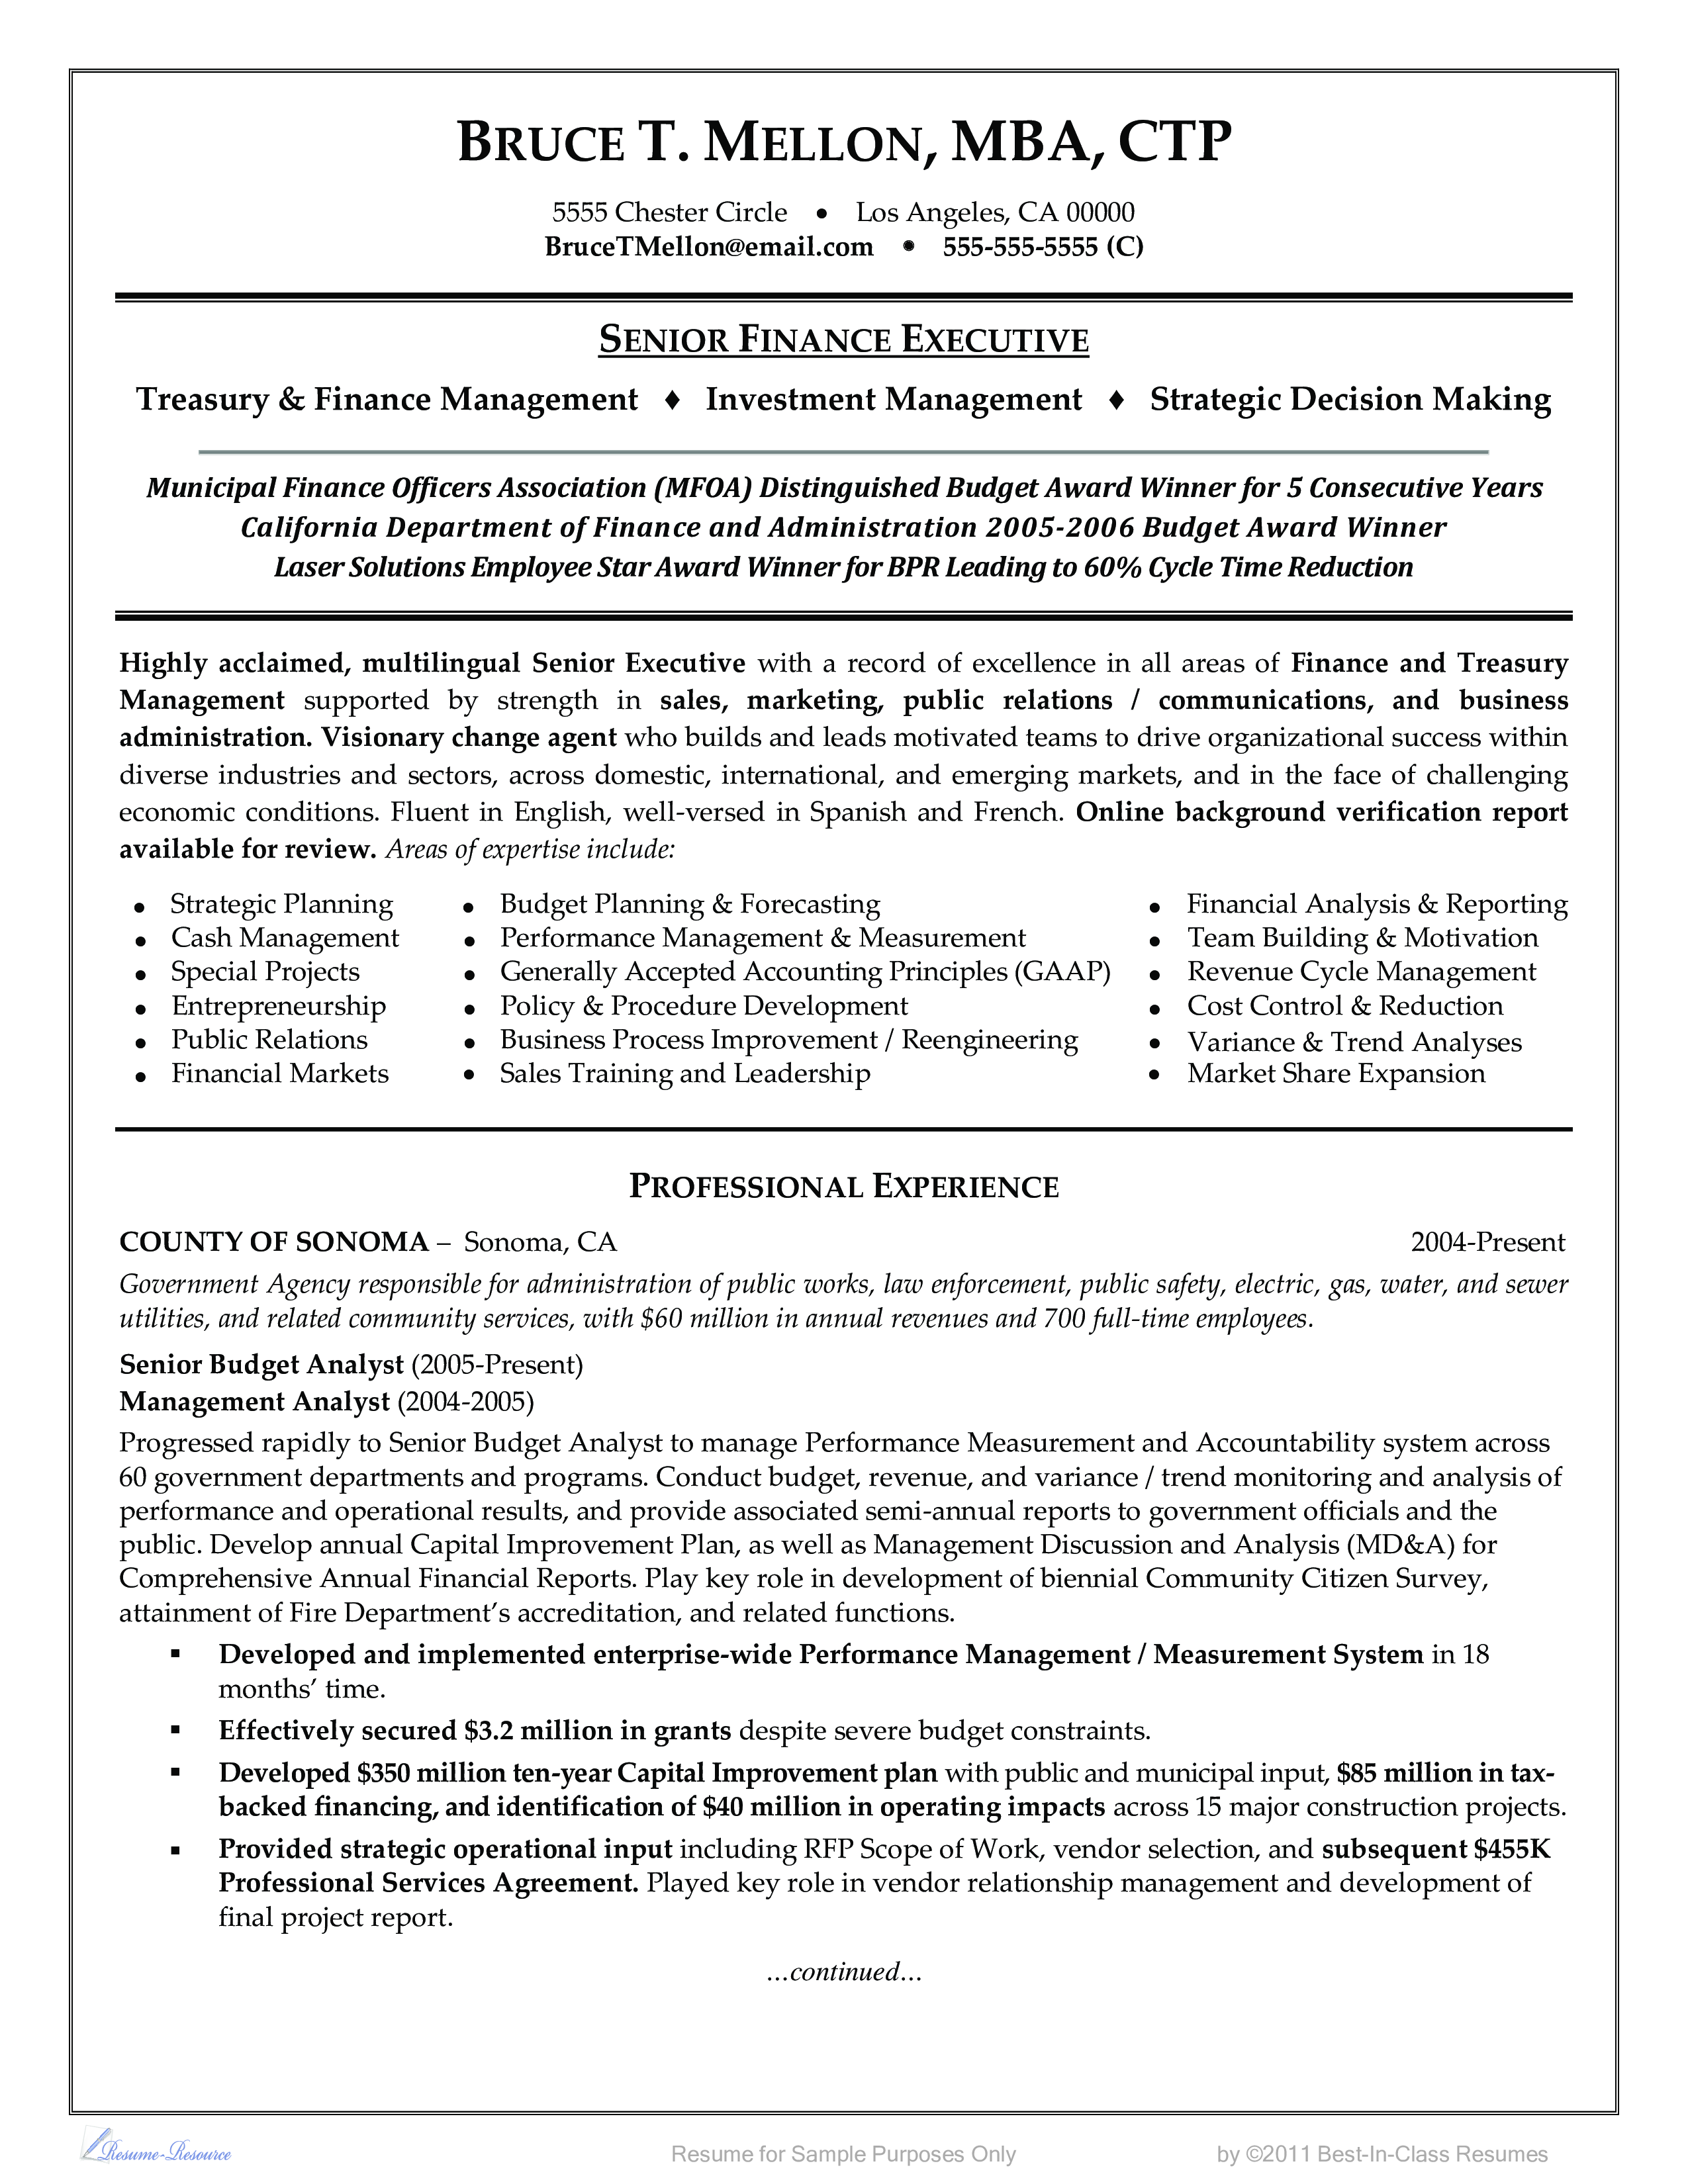 financial management resume how to draft a marketing product manager bsc chemistry fresher sample high school no work experience